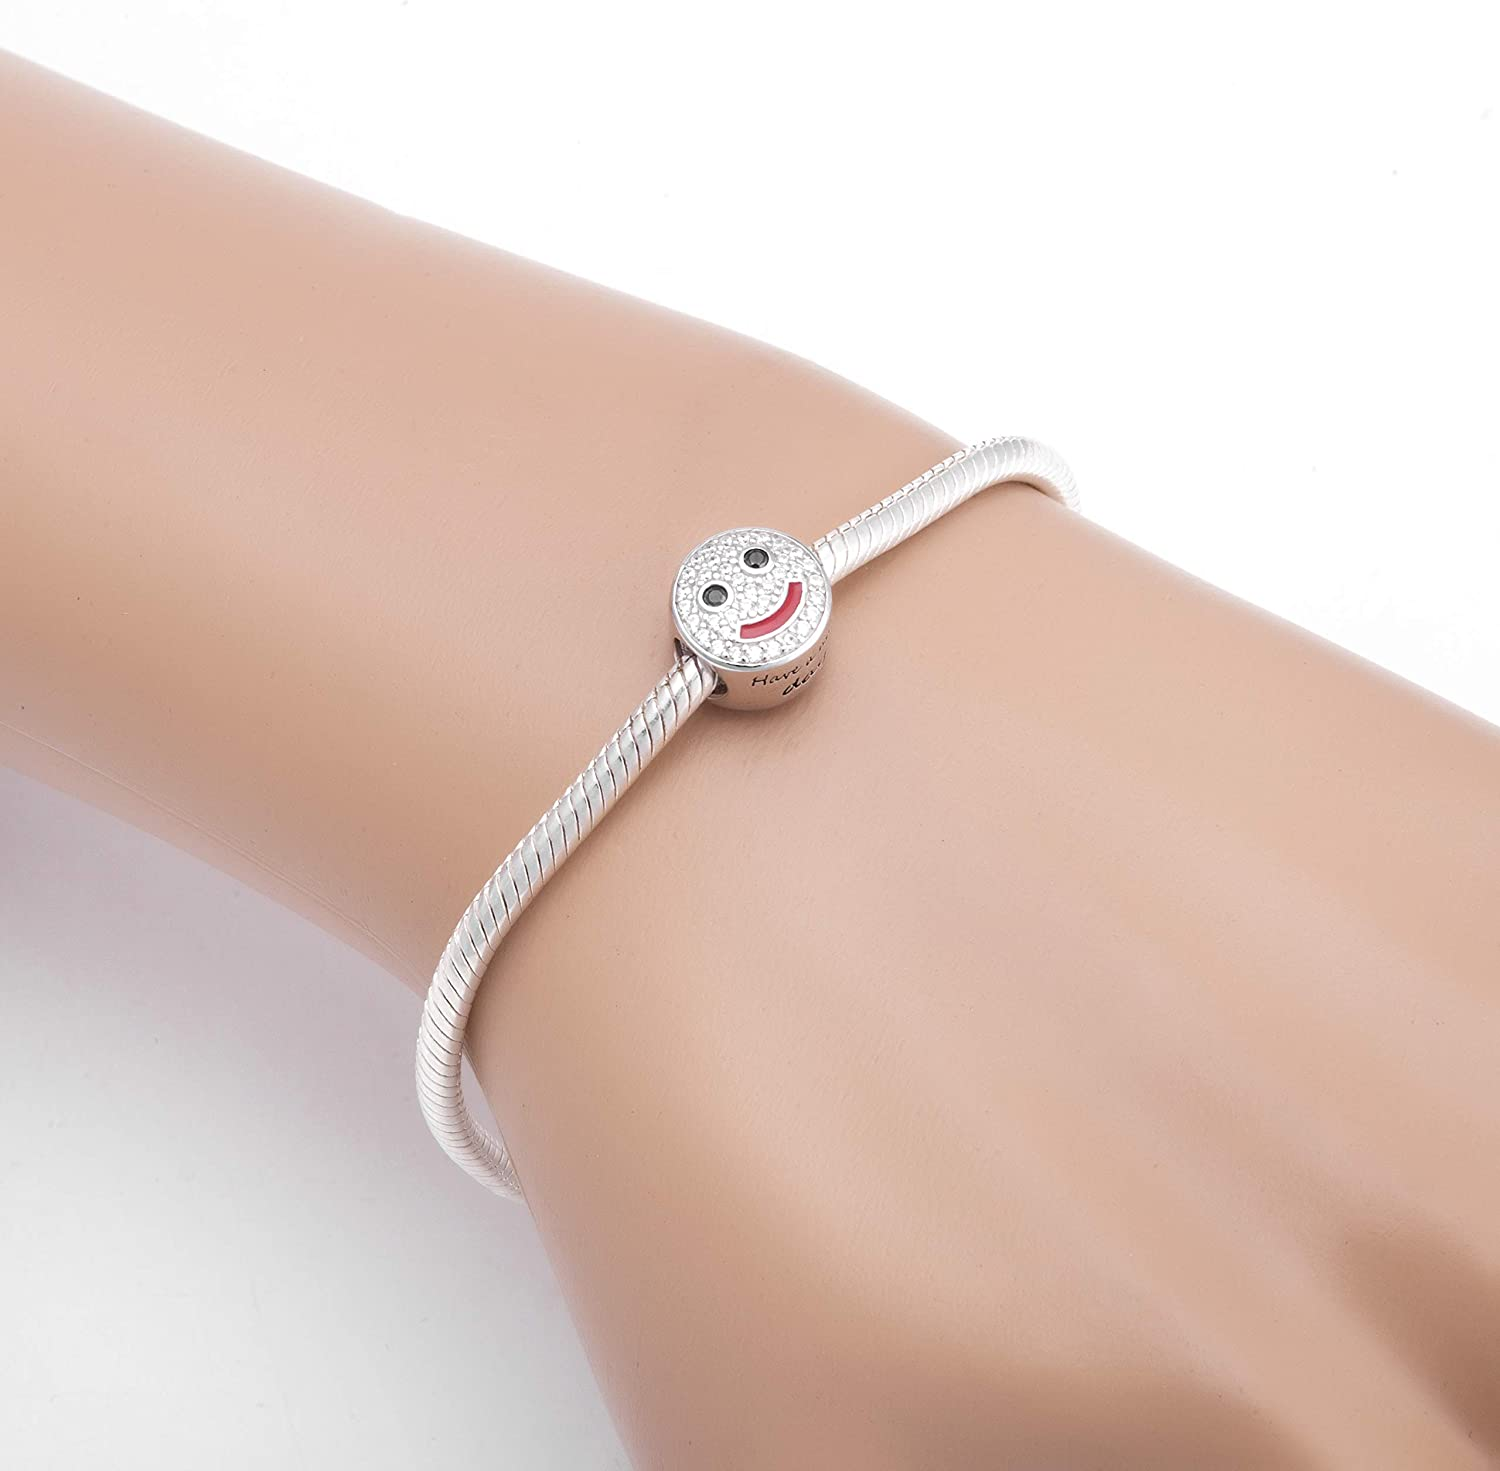 SOUKISS Smiling Face Charms 925 Sterling Silver Have a Nice Day Charms Fits European Bracelet